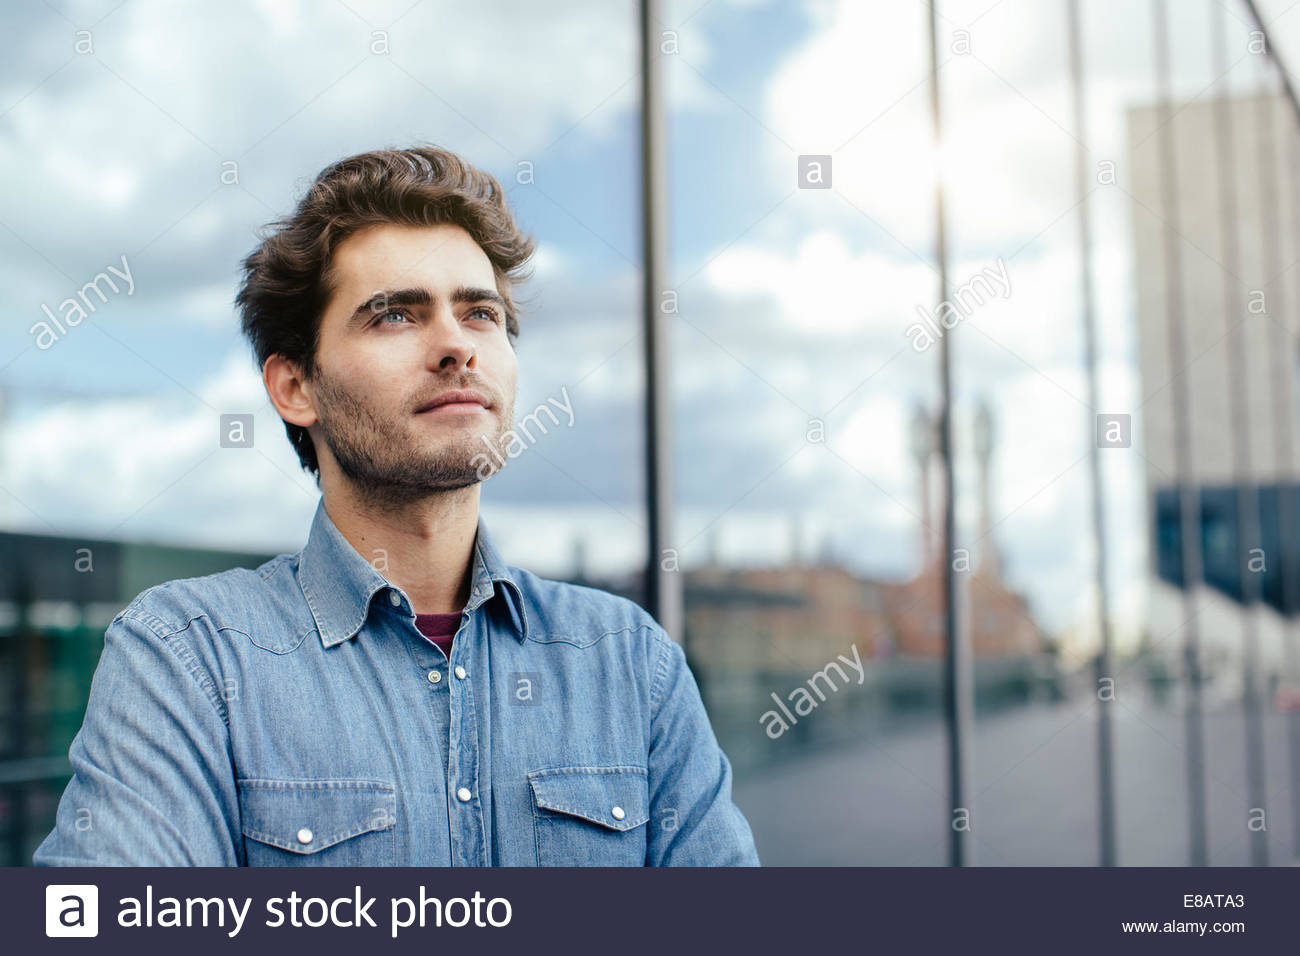 Young man by window - Stock Image